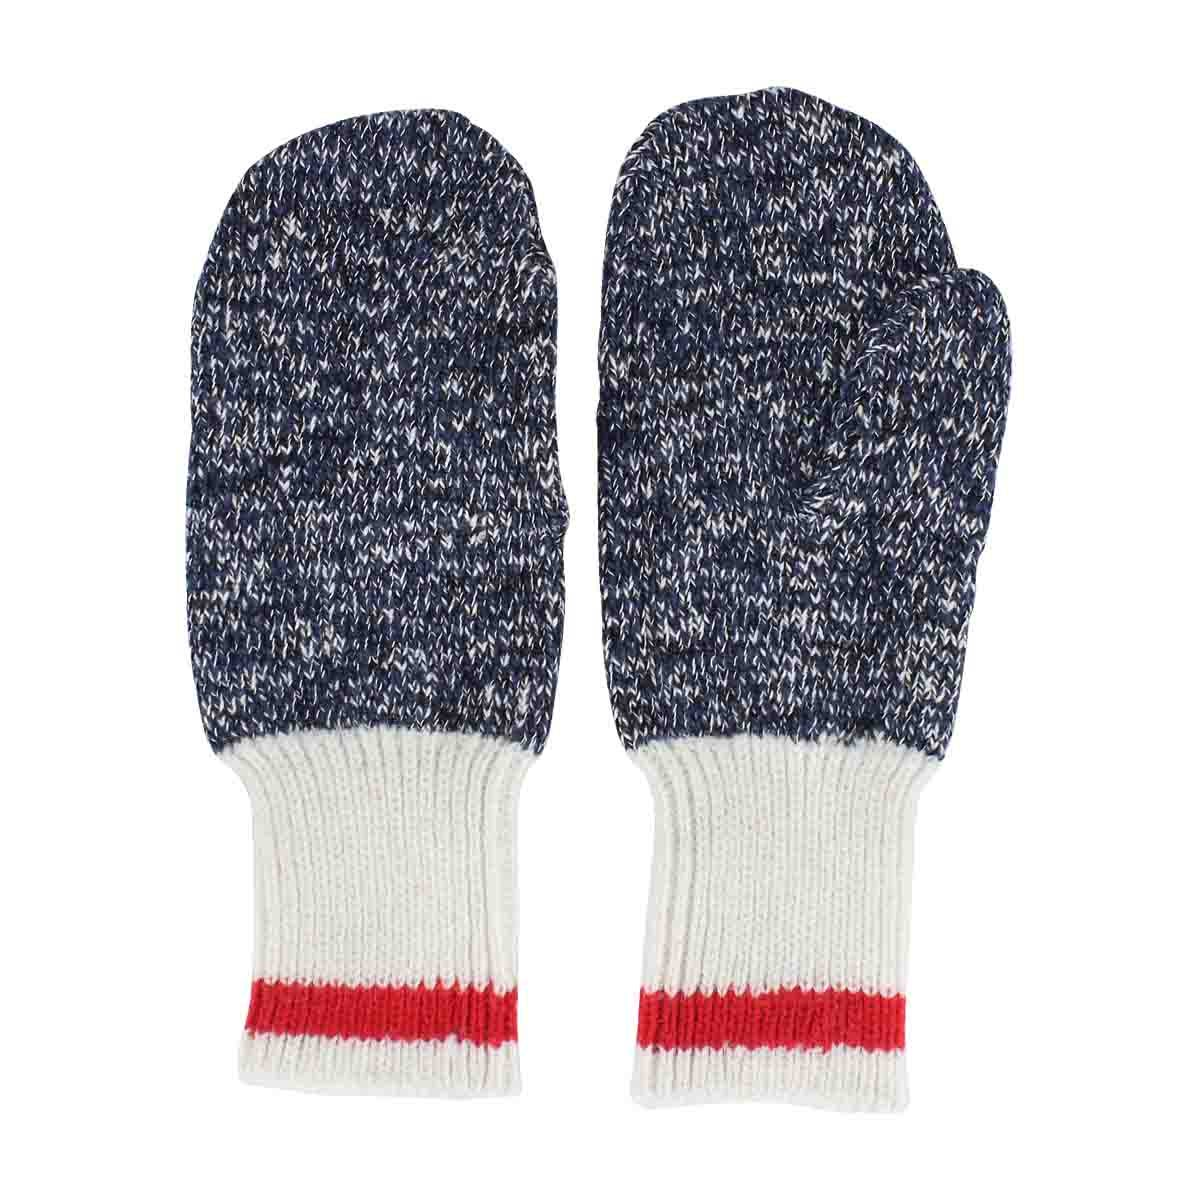 Lds Duray marled blue/ red mitten